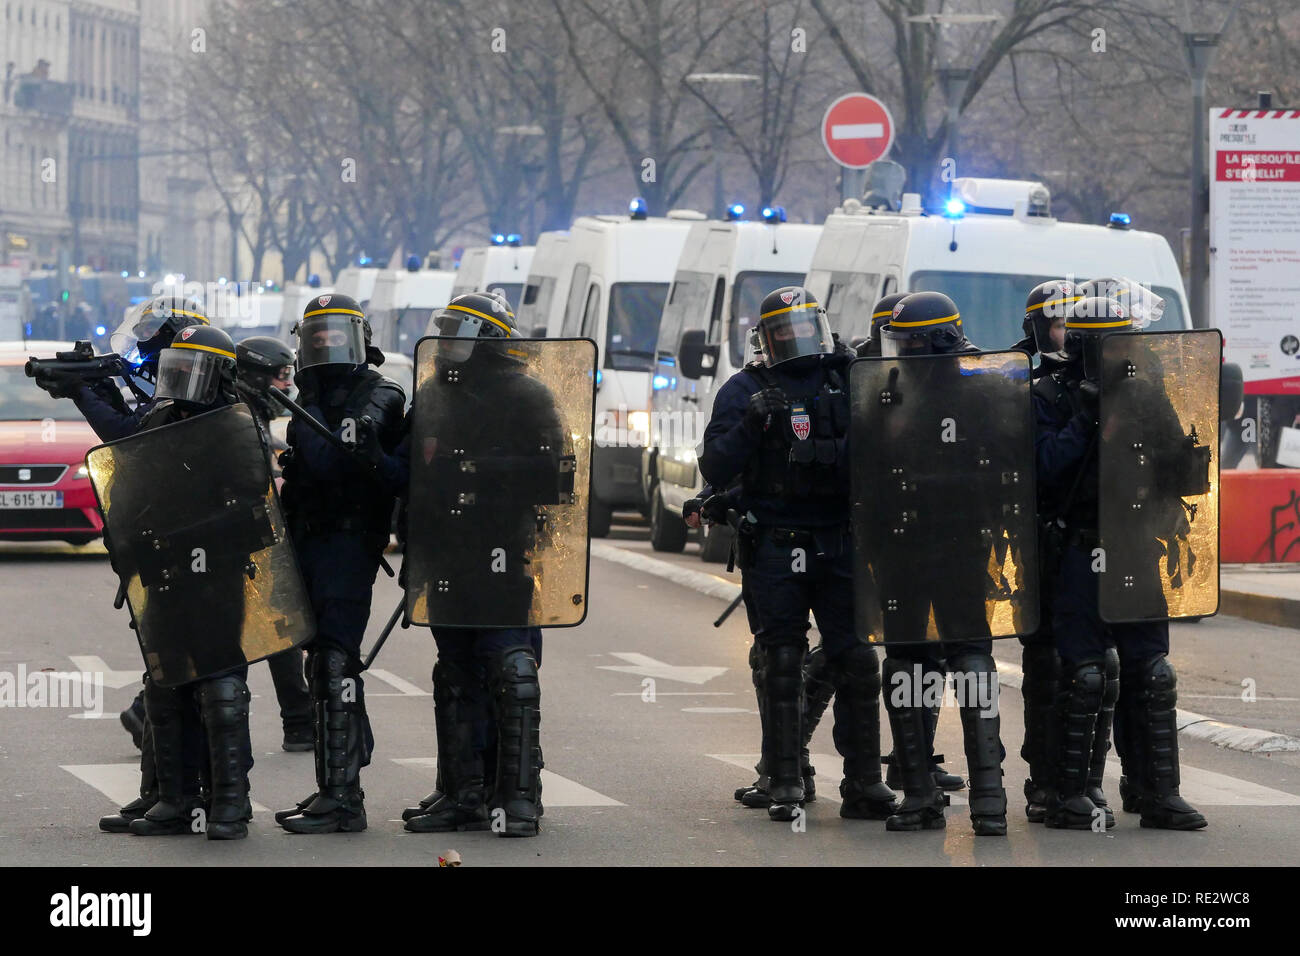 Lyon, France, January 19th 2019: Riot police officers face yellow jackets as they take part to the 10th day of protest against french goverment reform projetct in Lyon (Central-Eastern France) on january 19, 2019. Credit Photo: Serge Mouraret/Alamy Live News - Stock Image